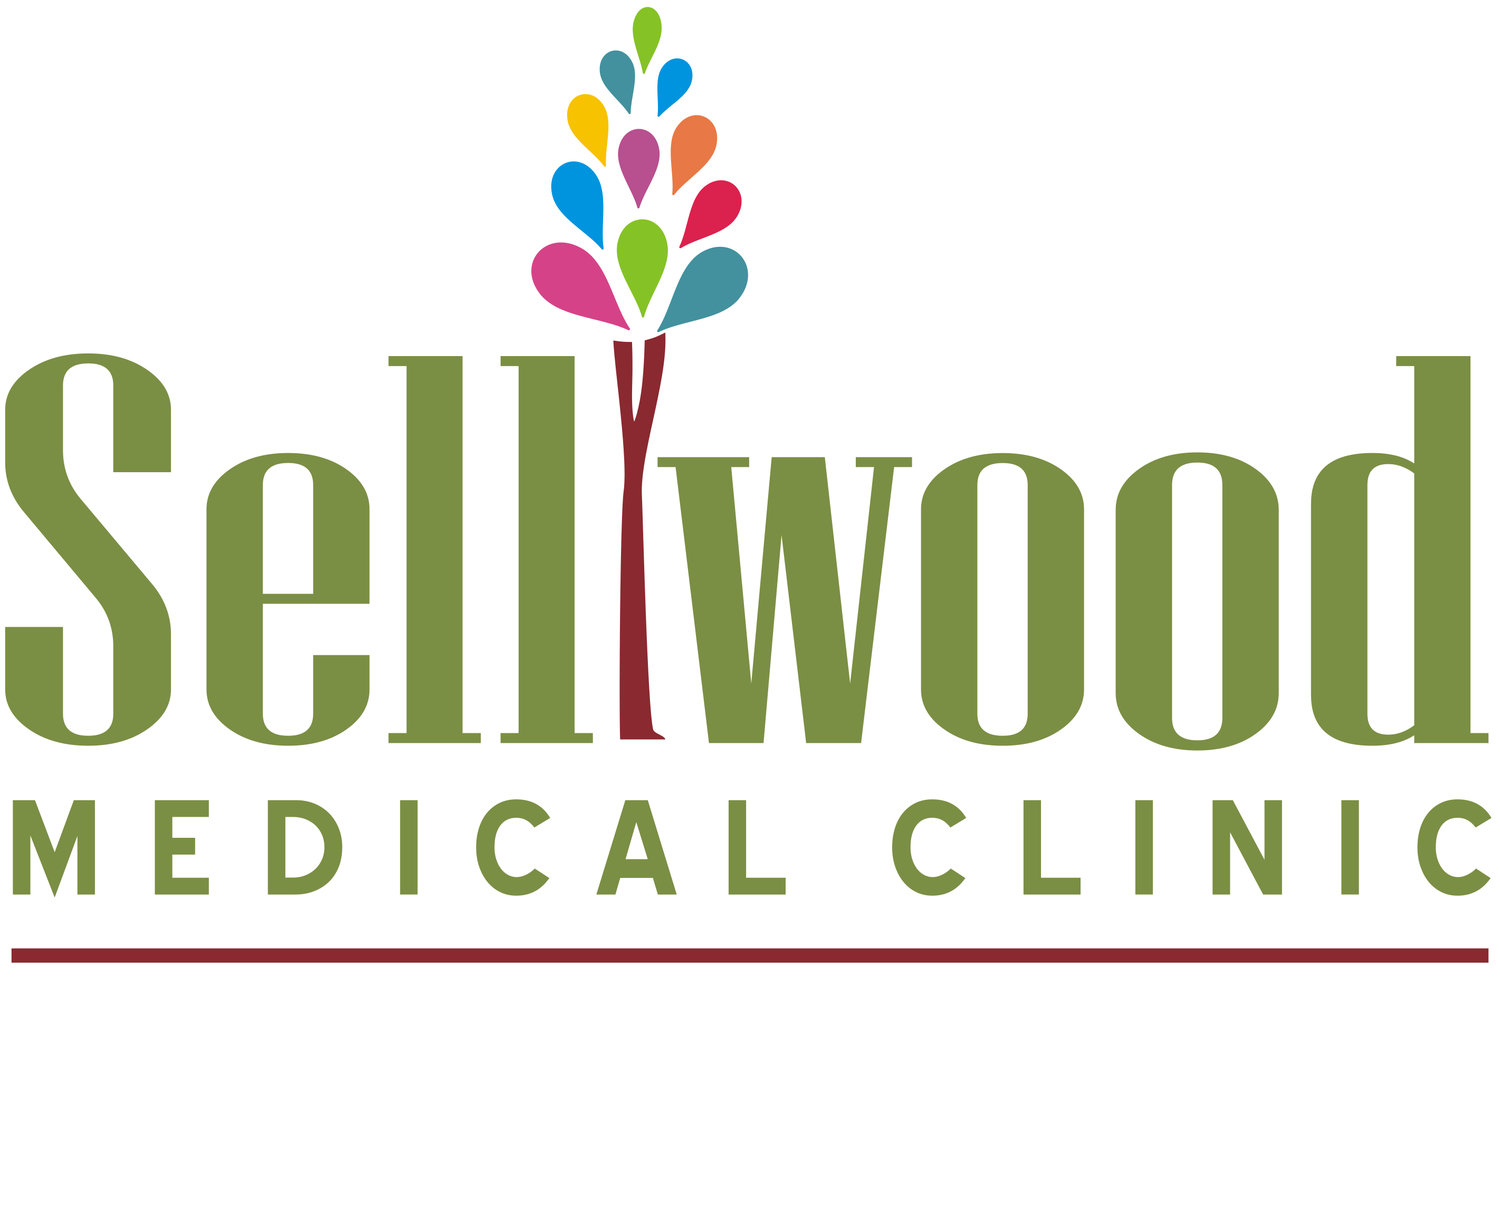 Sellwood Medical Clinic - Three Locations in Portland, OR